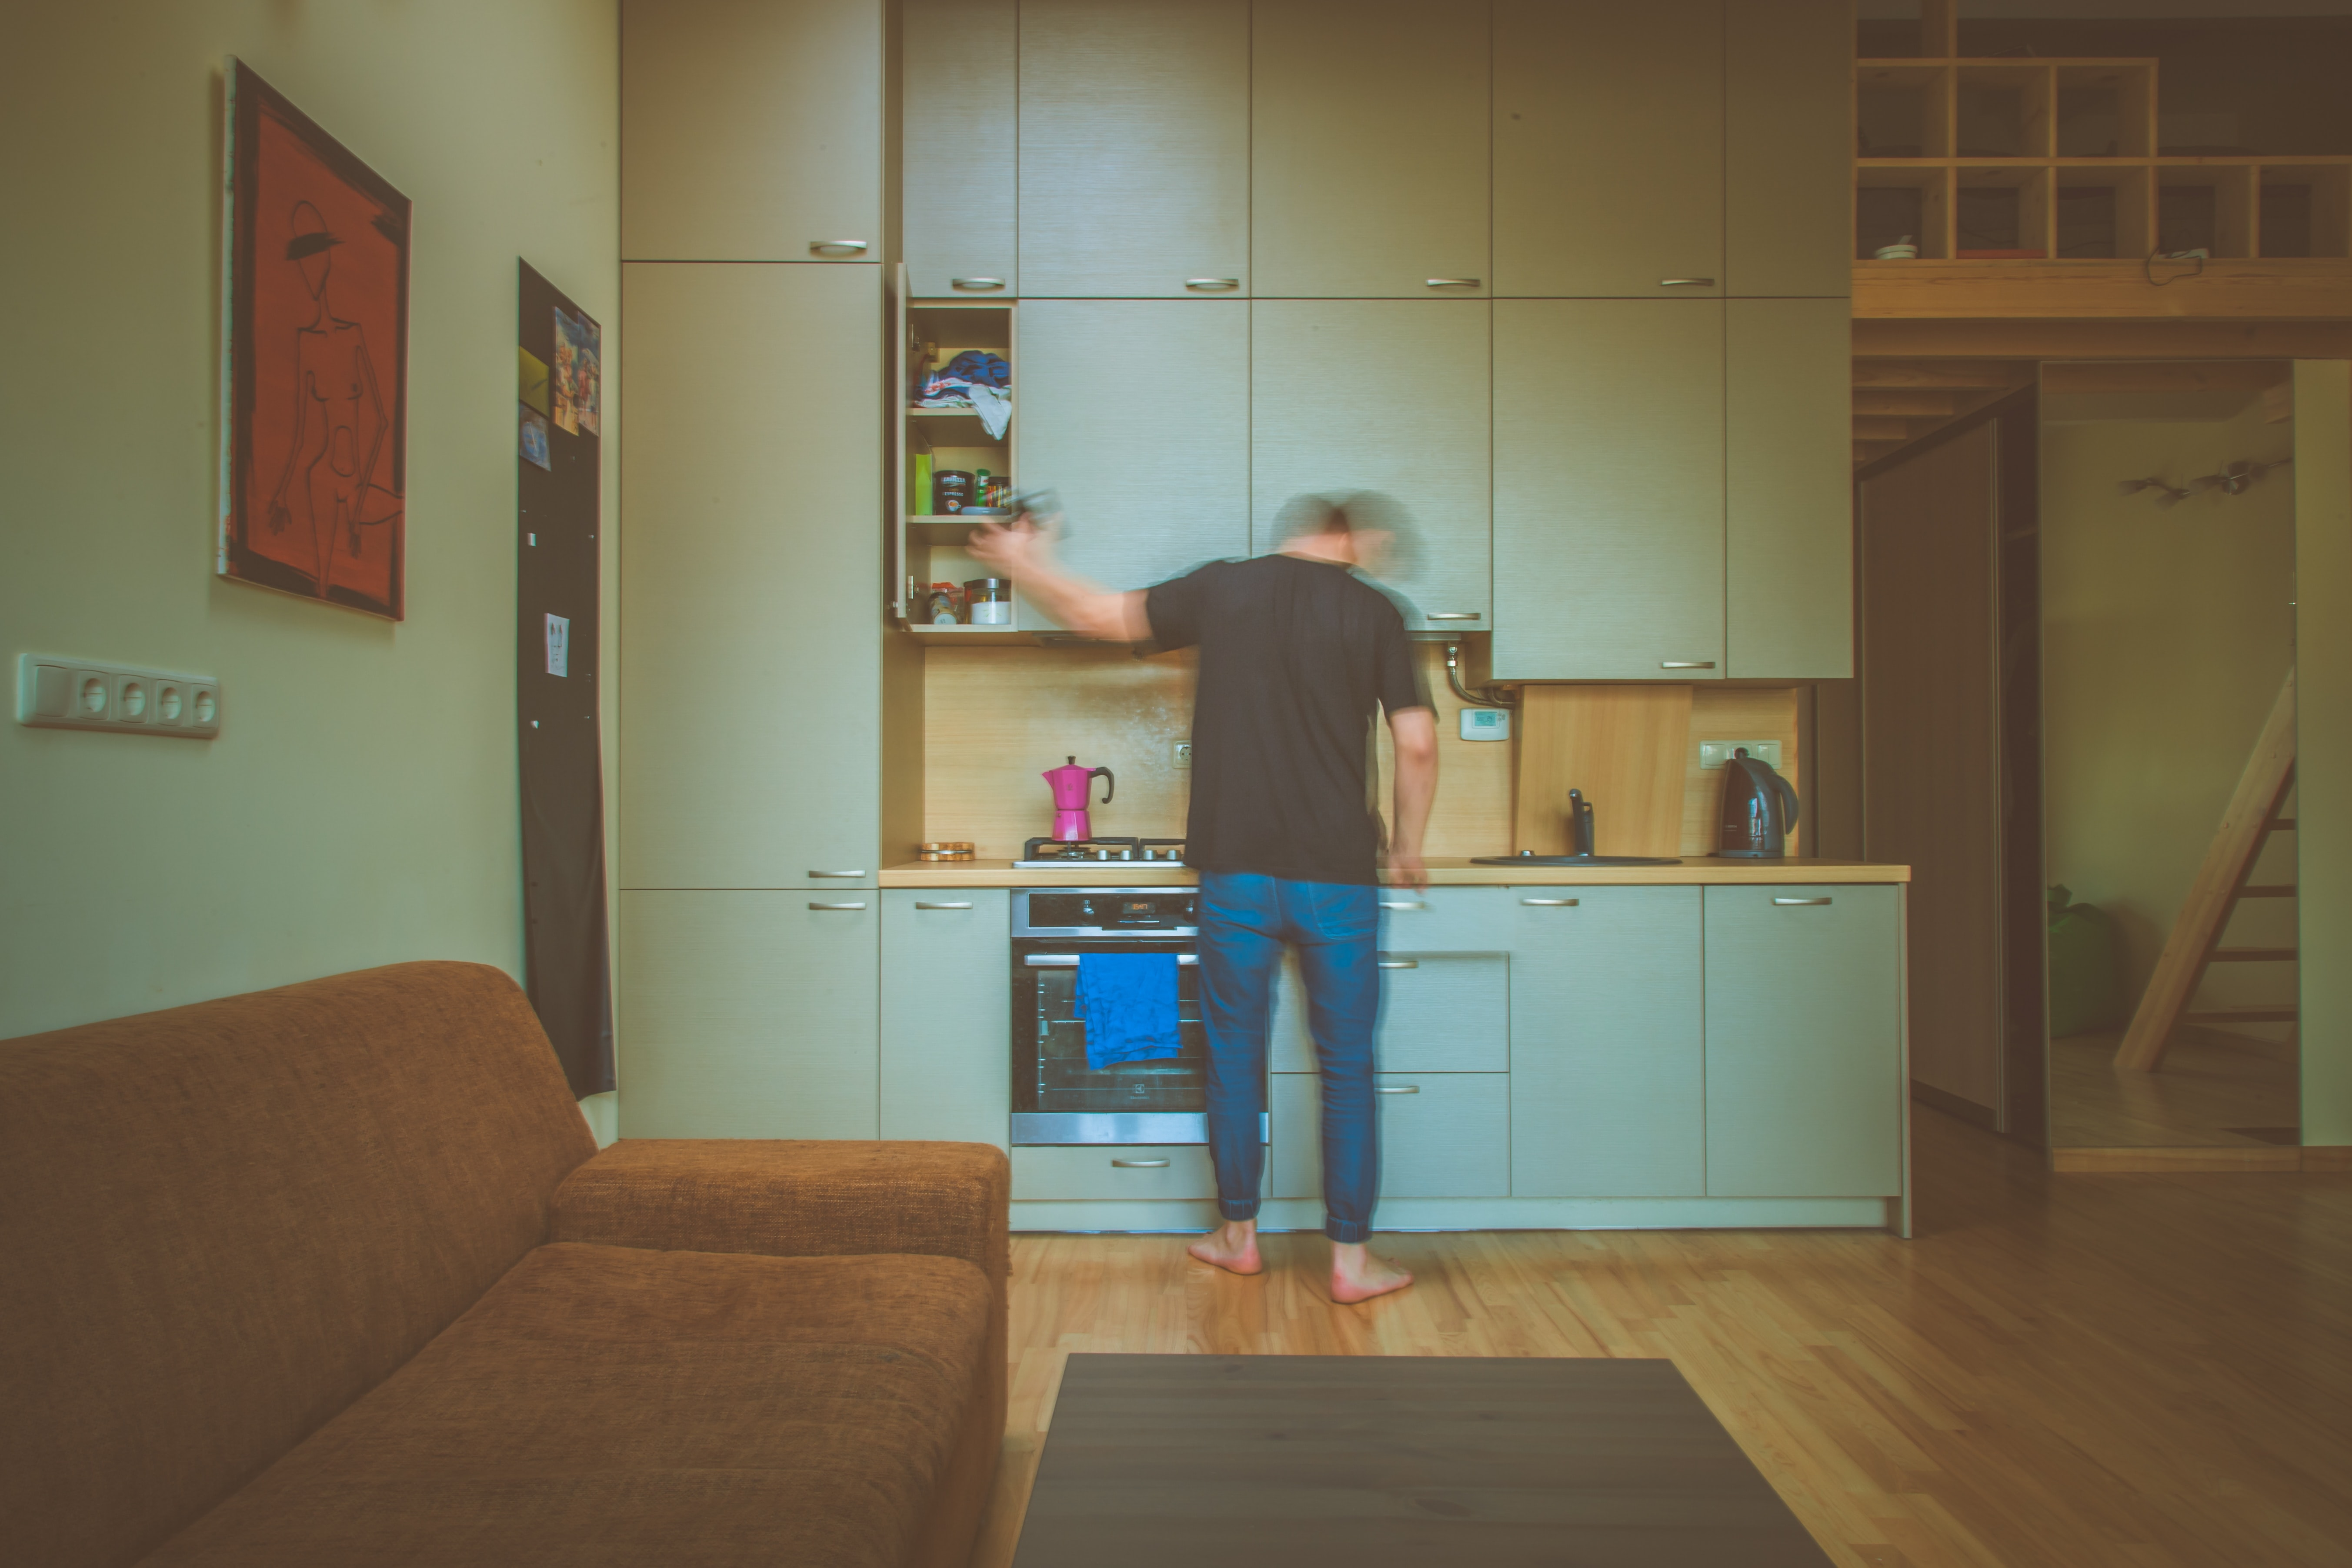 15 Tips for Creating Great Marketing Videos - An image of a man in his kitchen